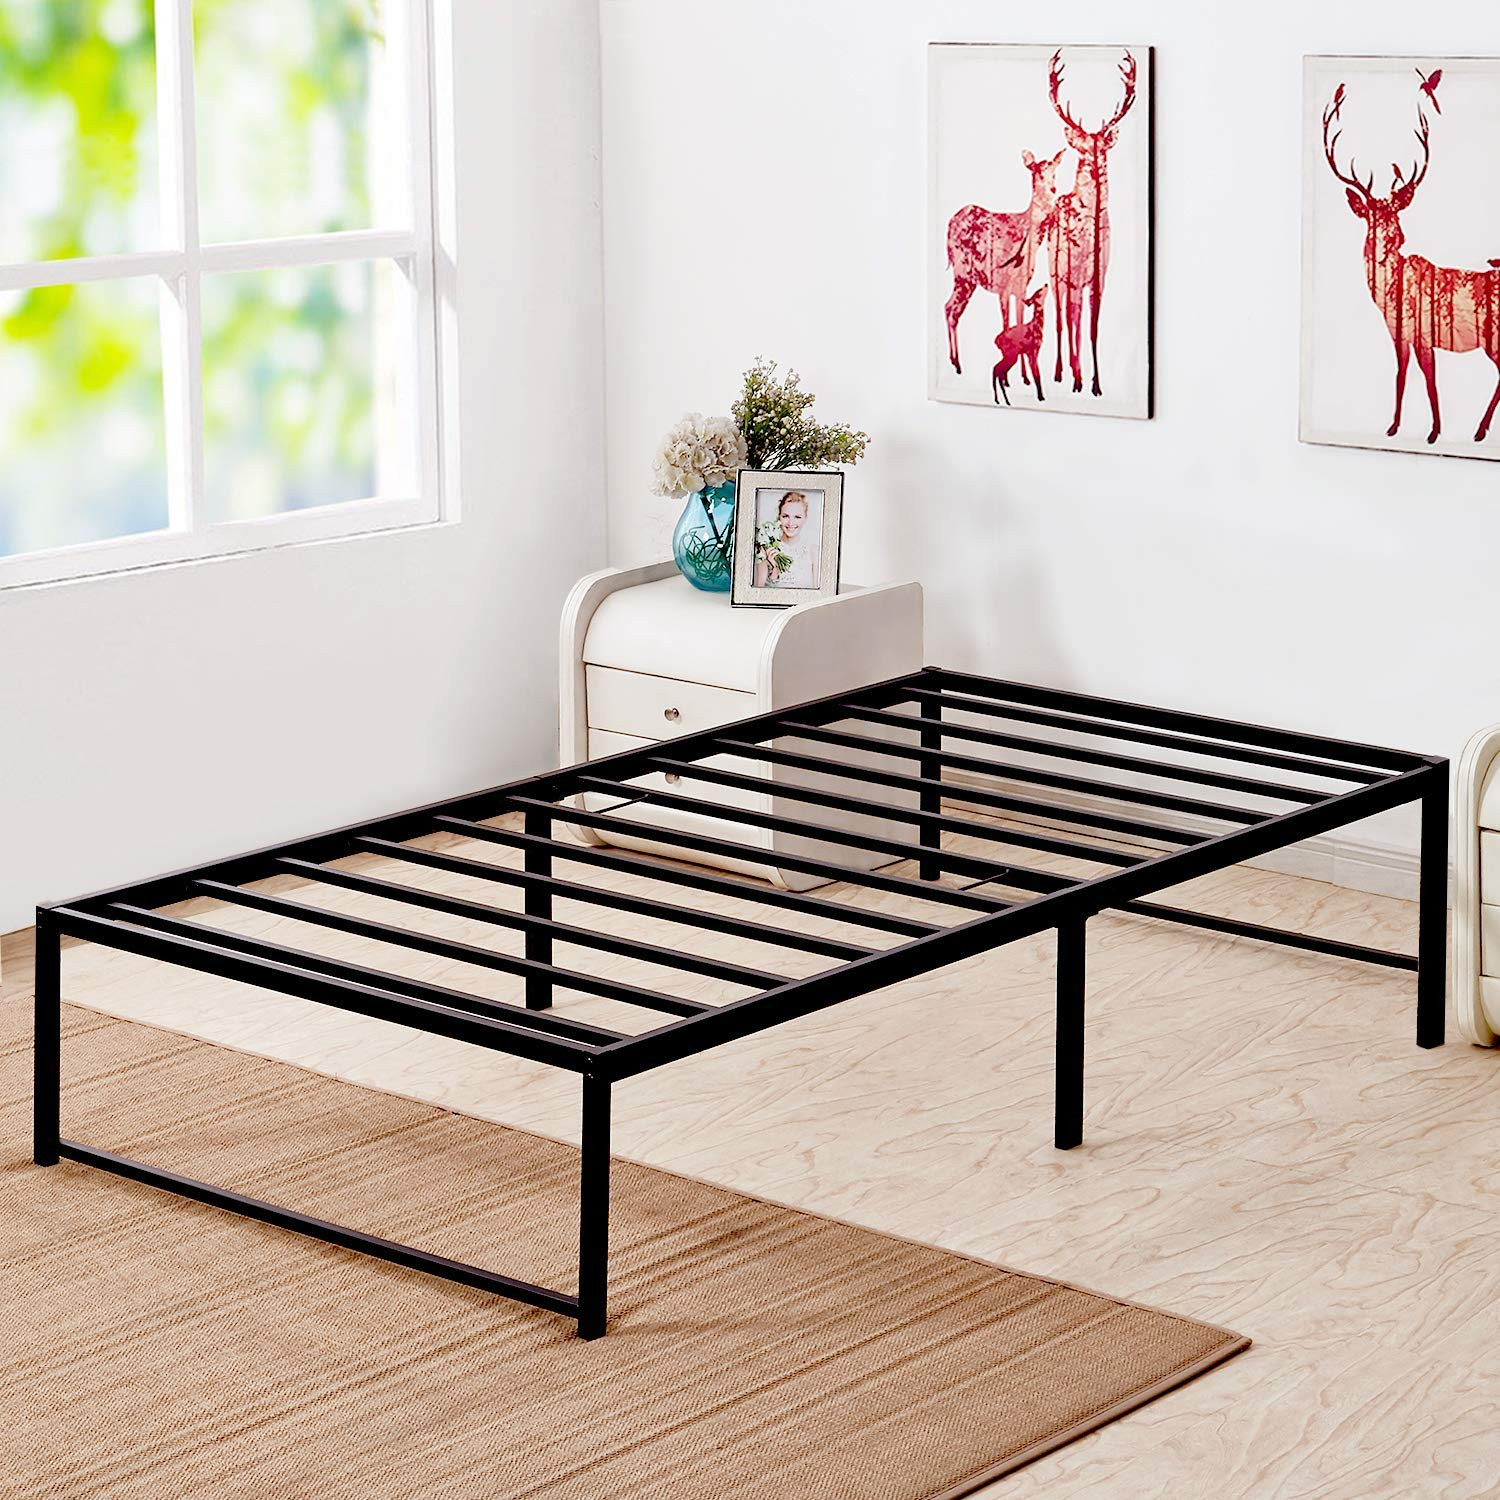 VECELO 14 Inch Platform Bed Frame/Mattress Foundation/No No Box Spring Needed/Steel Slat Support, Twin Size, Black